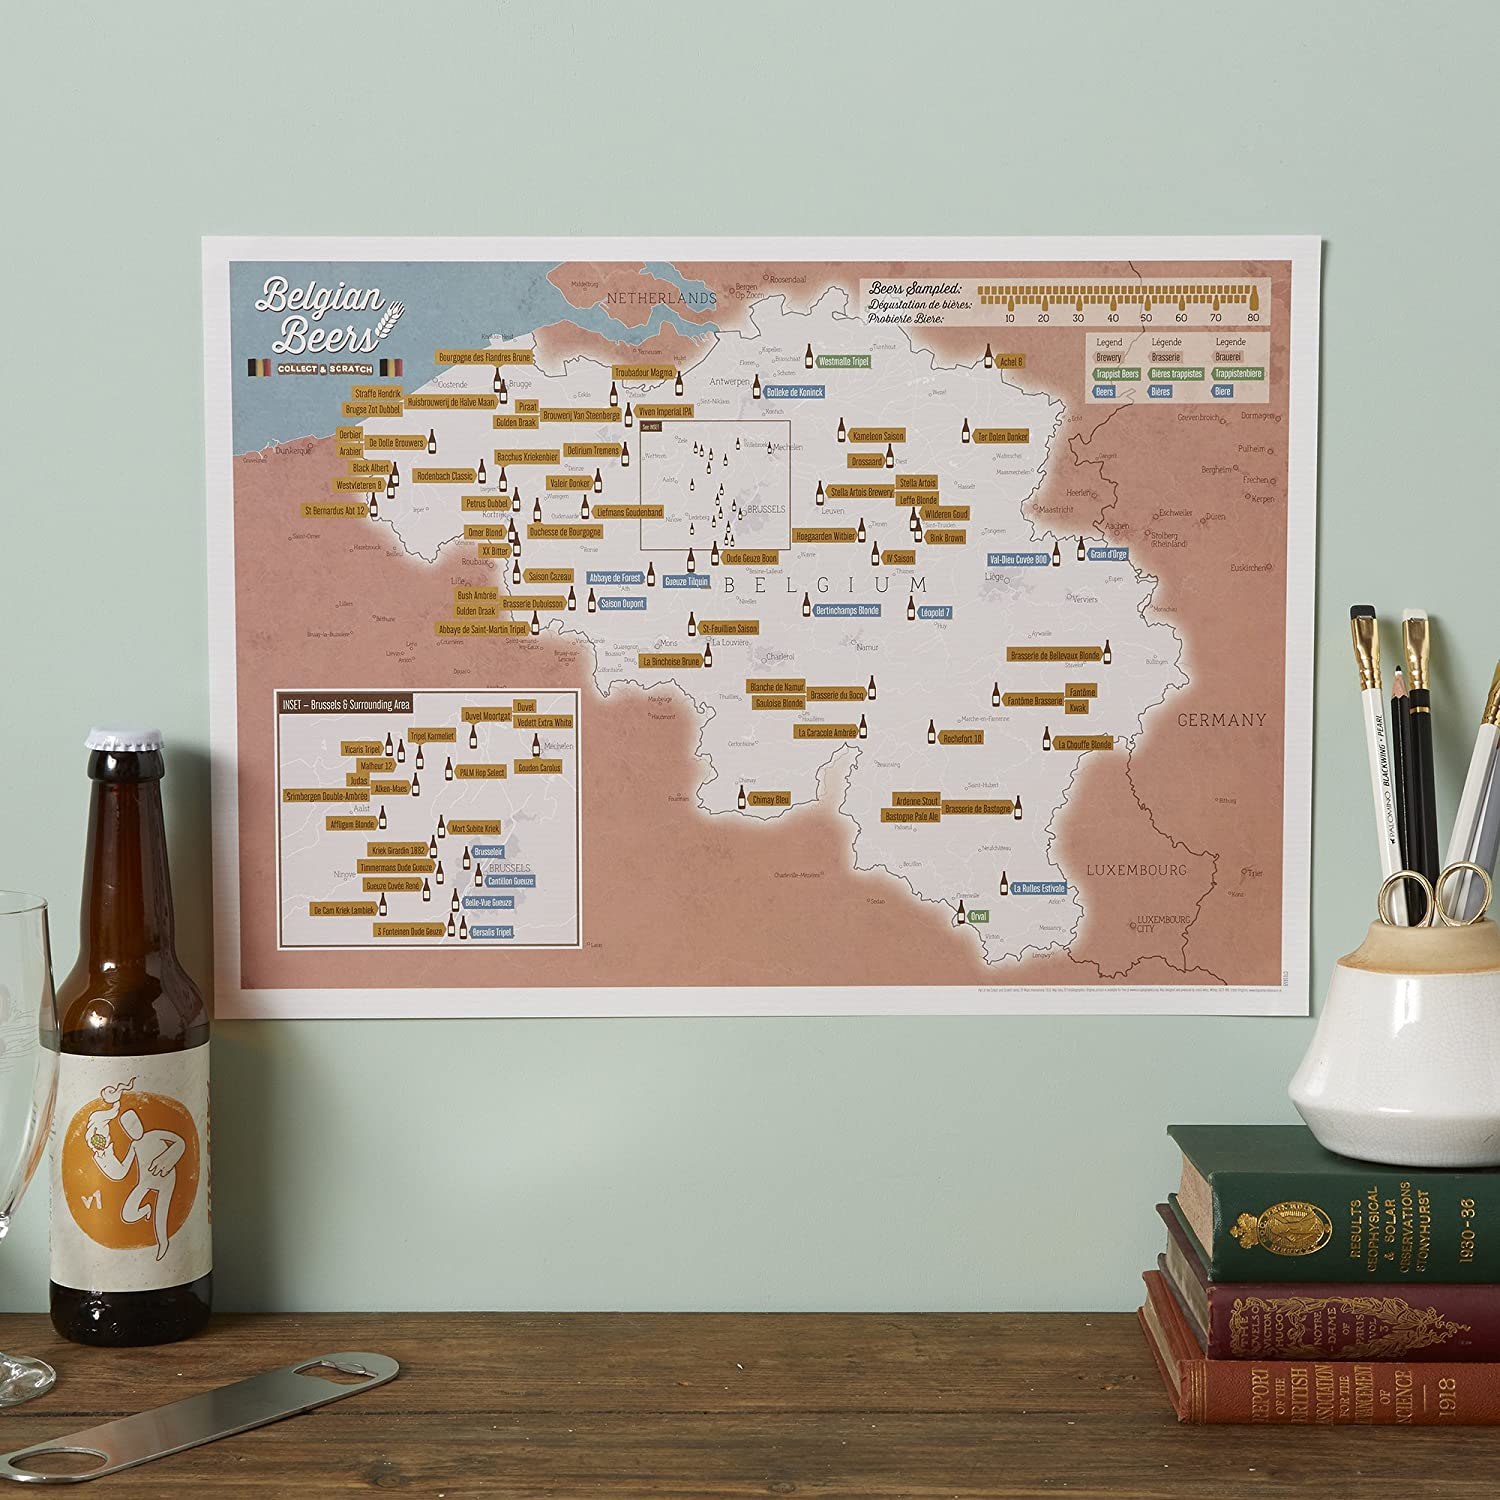 11 gifts for a Belgian beer lover